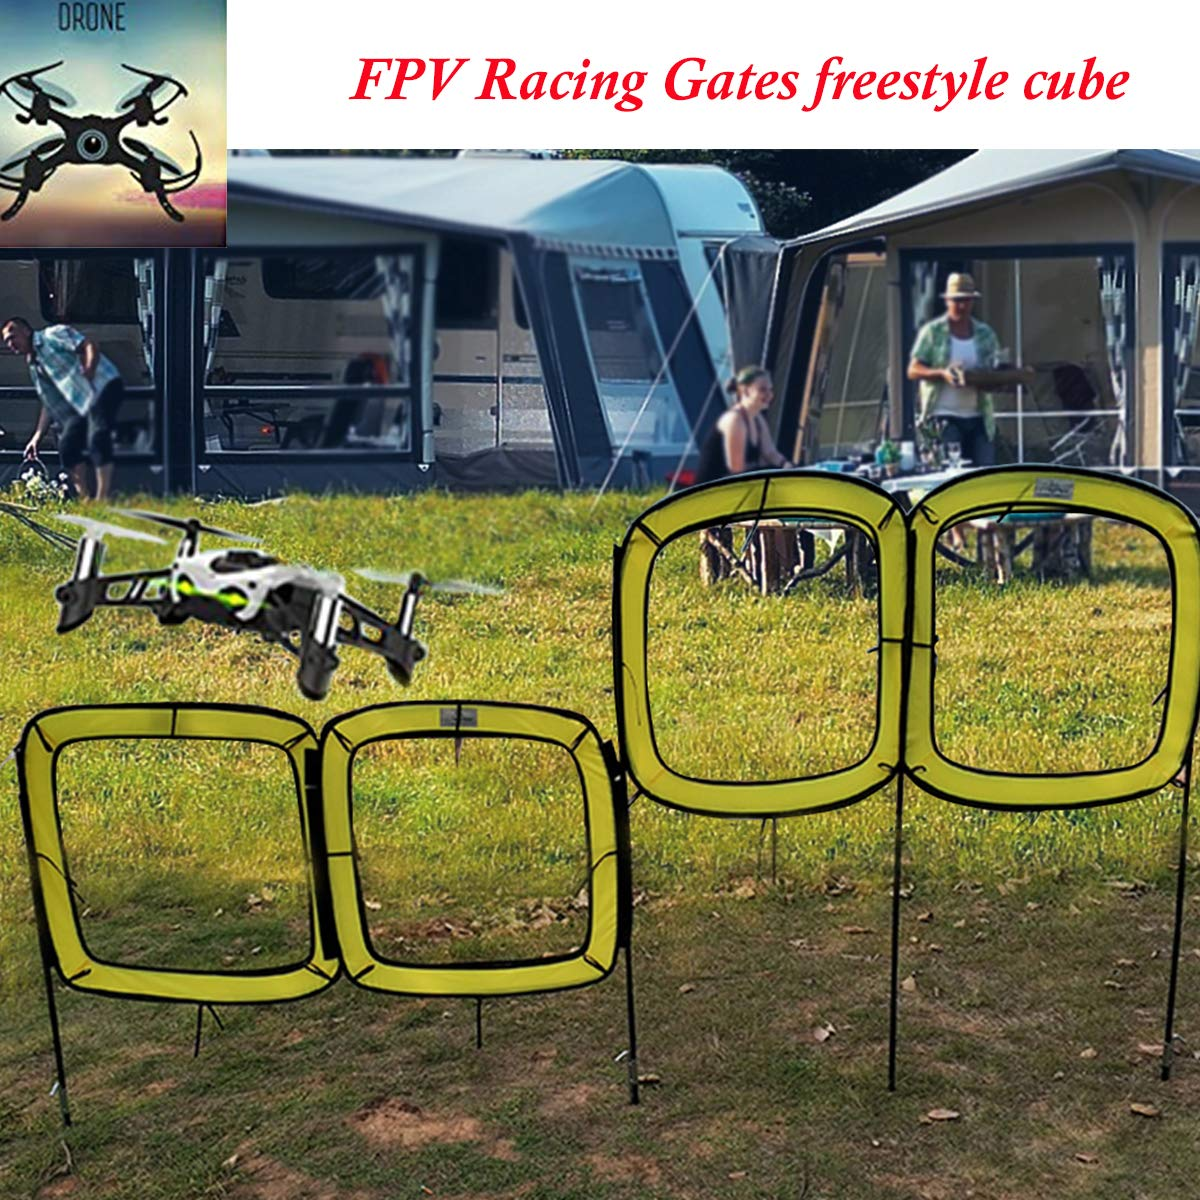 STARTRC Drone Racing Obstacle Course, FPV Ultra-Portable Race Gates Freestyle Cube,Create Your Own FPV Racing Drone Racing League.